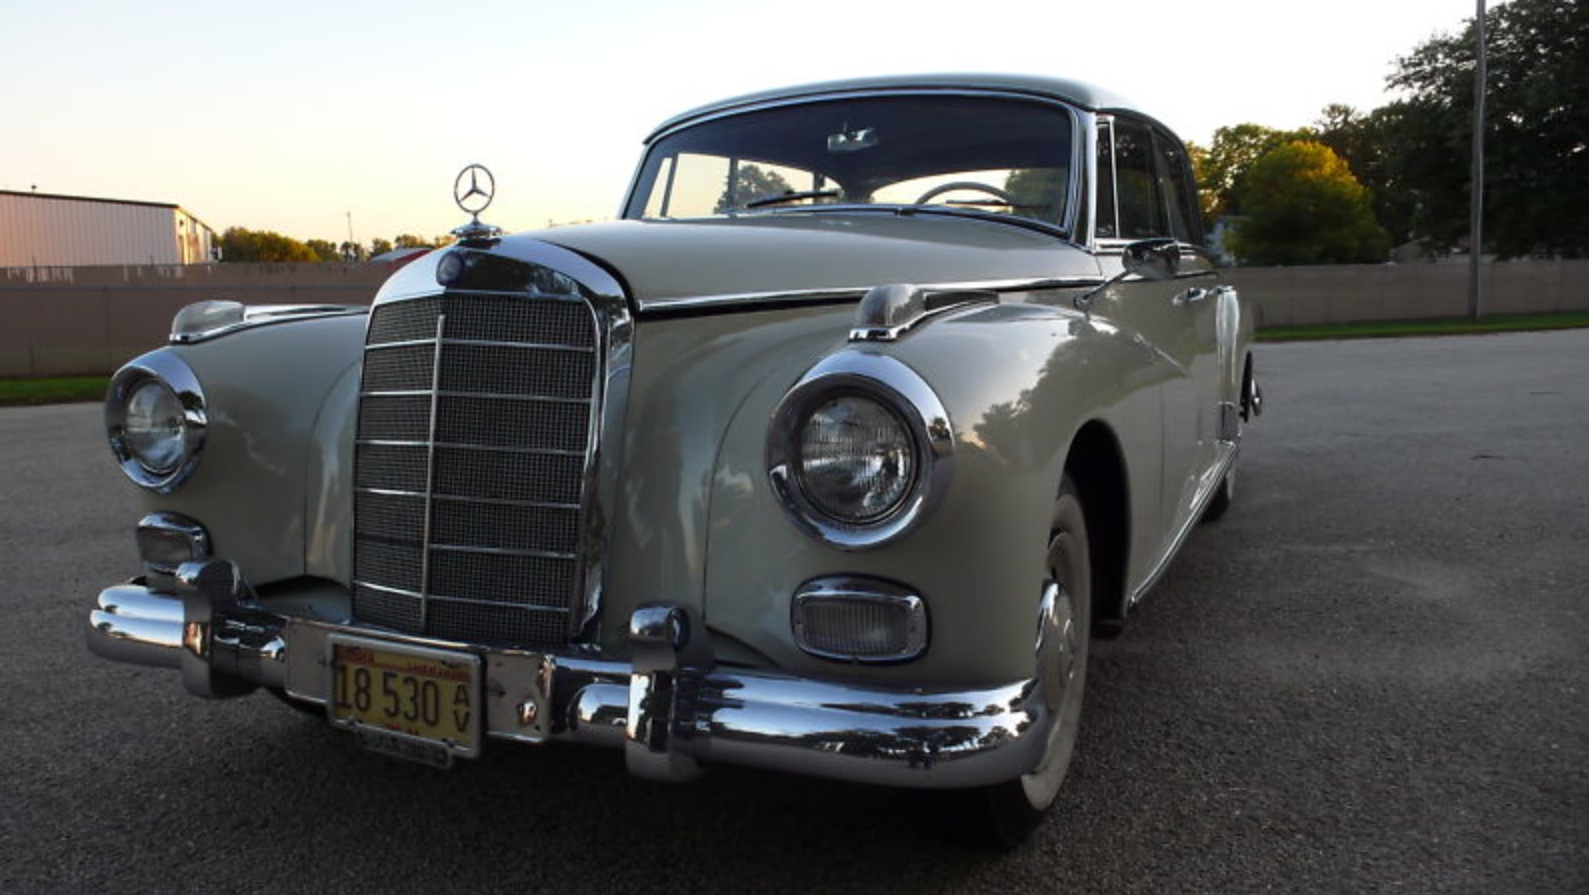 hight resolution of 1960 mercedes benz 300d adenauer